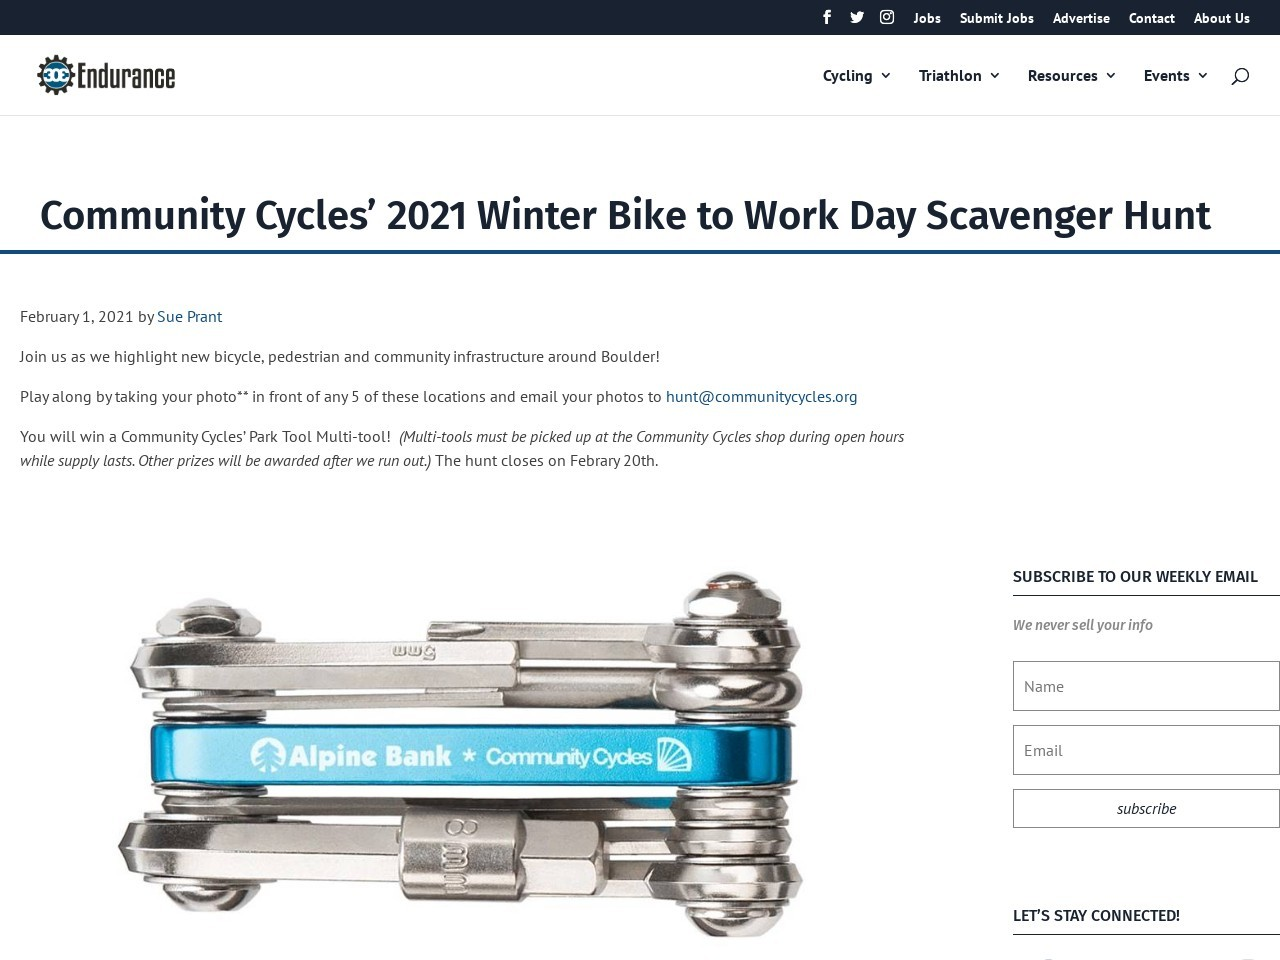 Community Cycles' 2021 Winter Bike to Work Day Scavenger Hunt